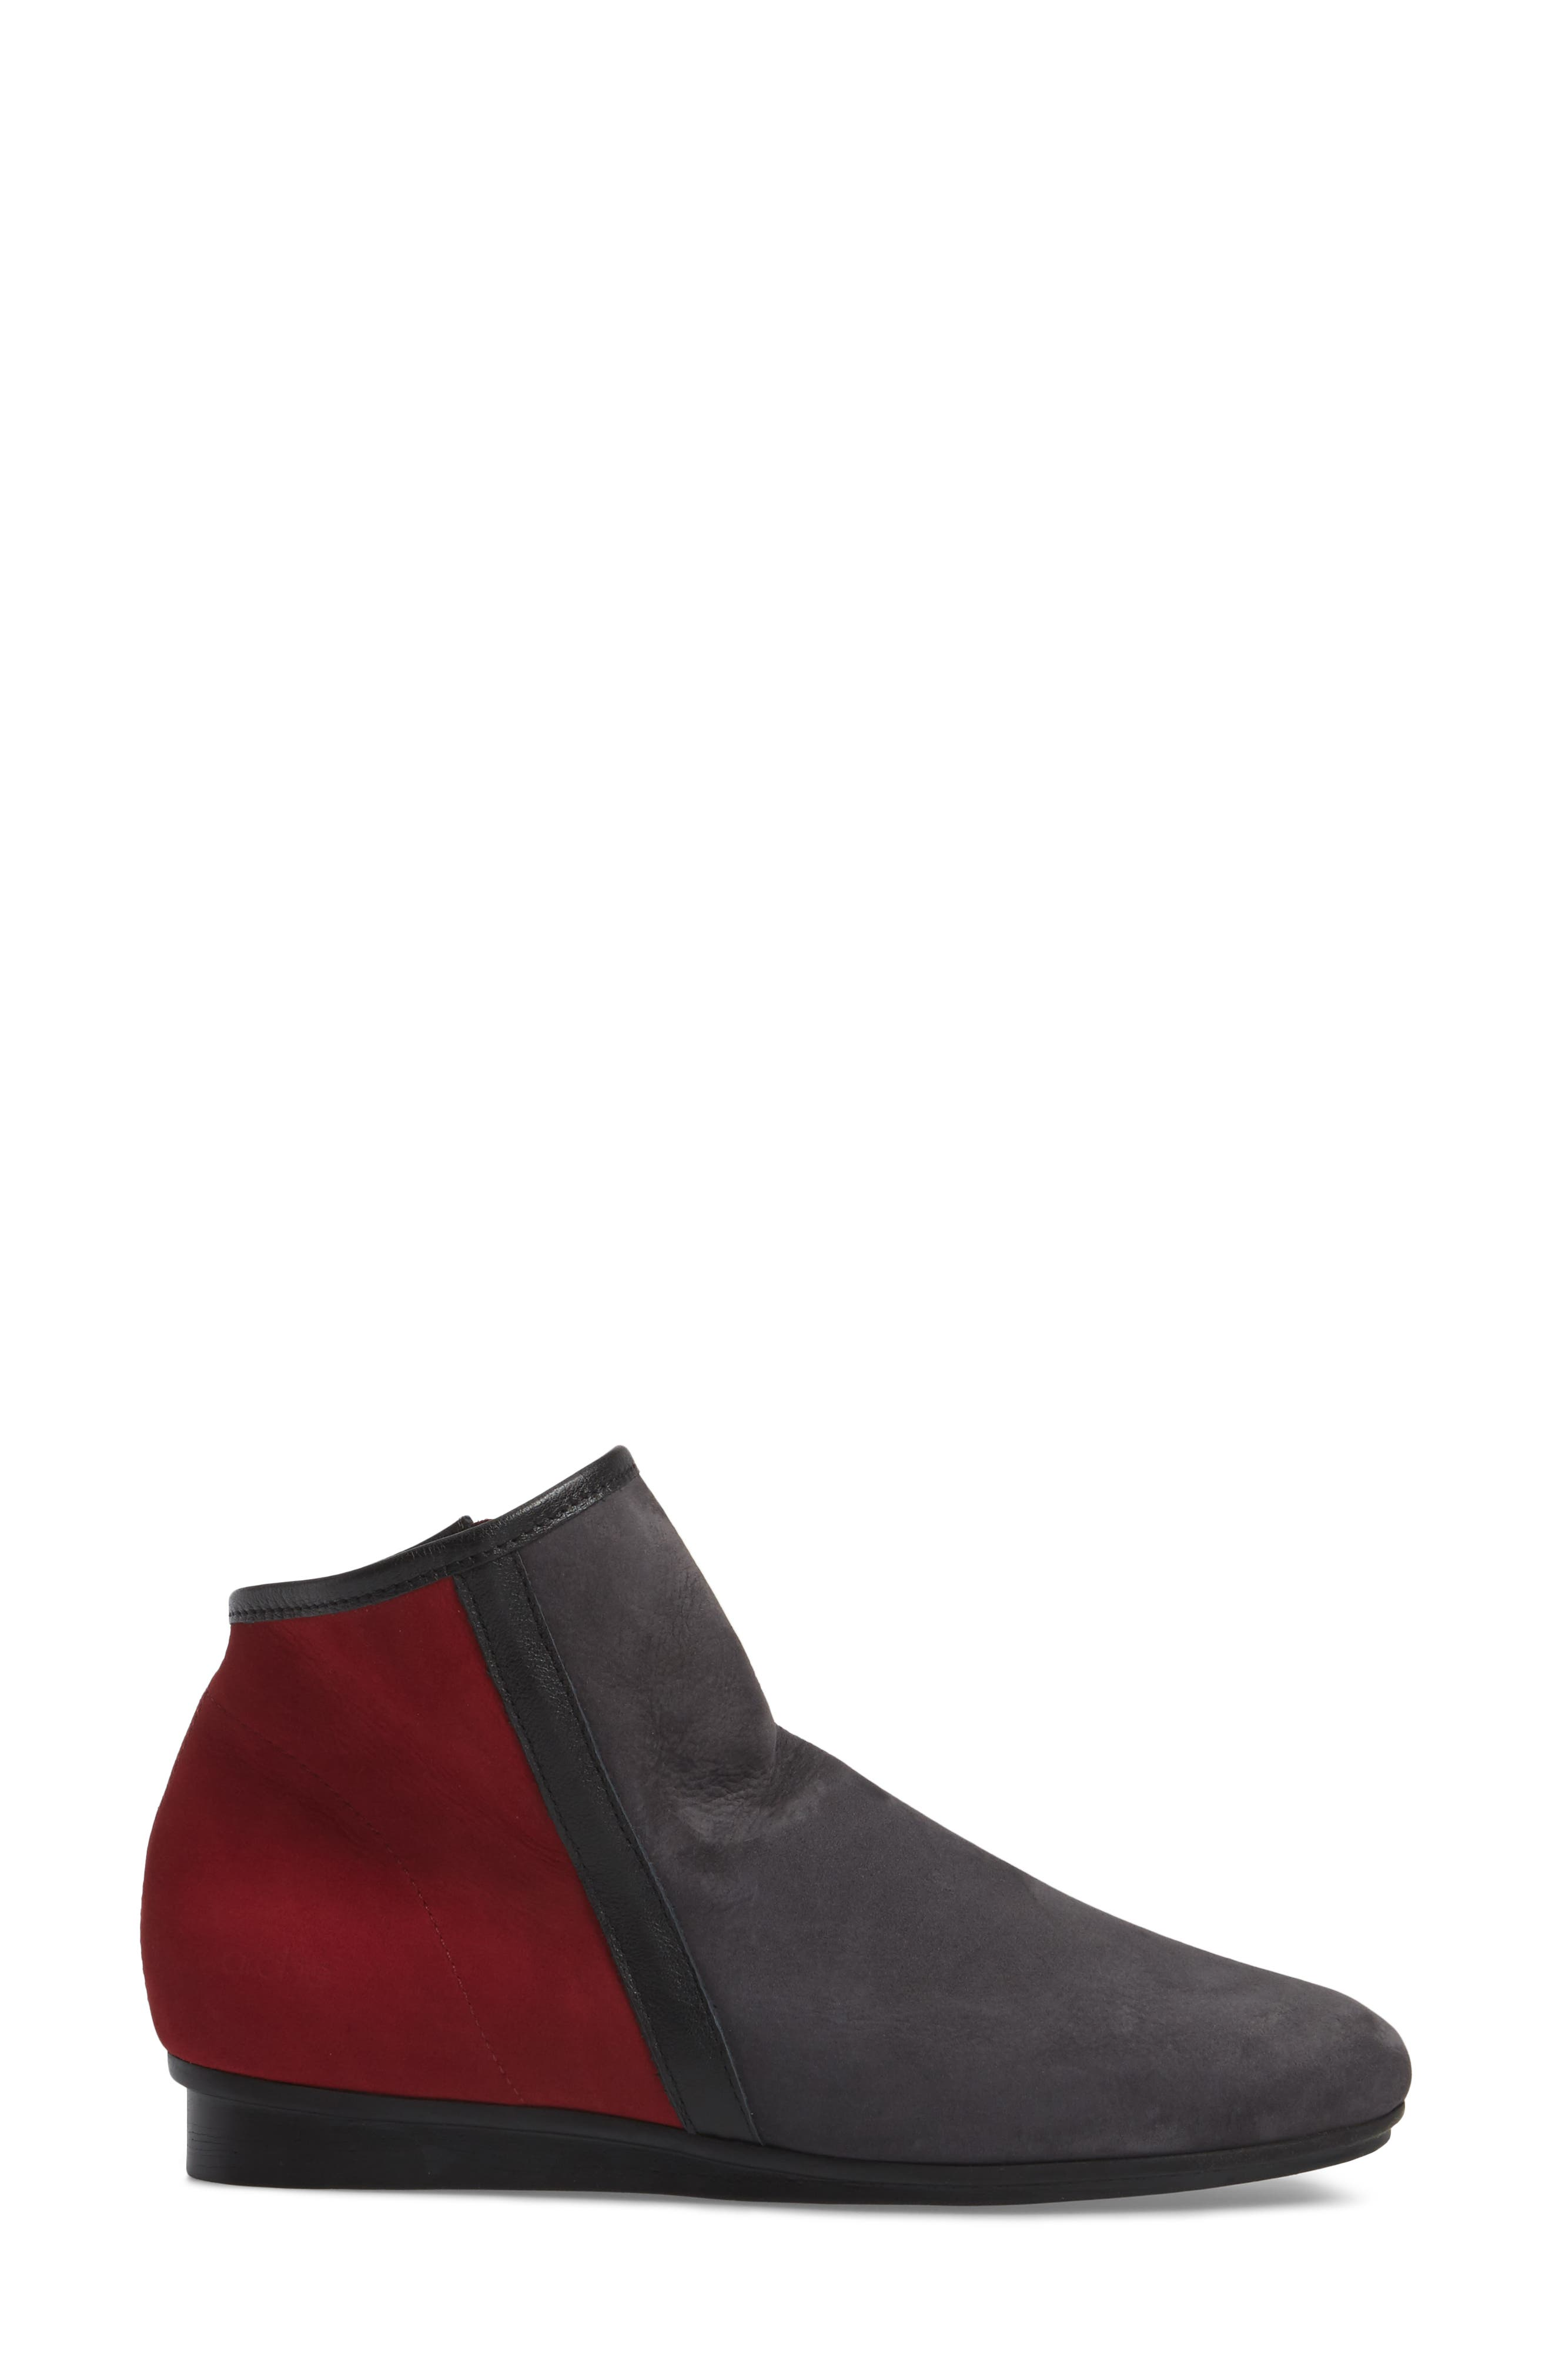 Ninote Bootie,                             Alternate thumbnail 7, color,